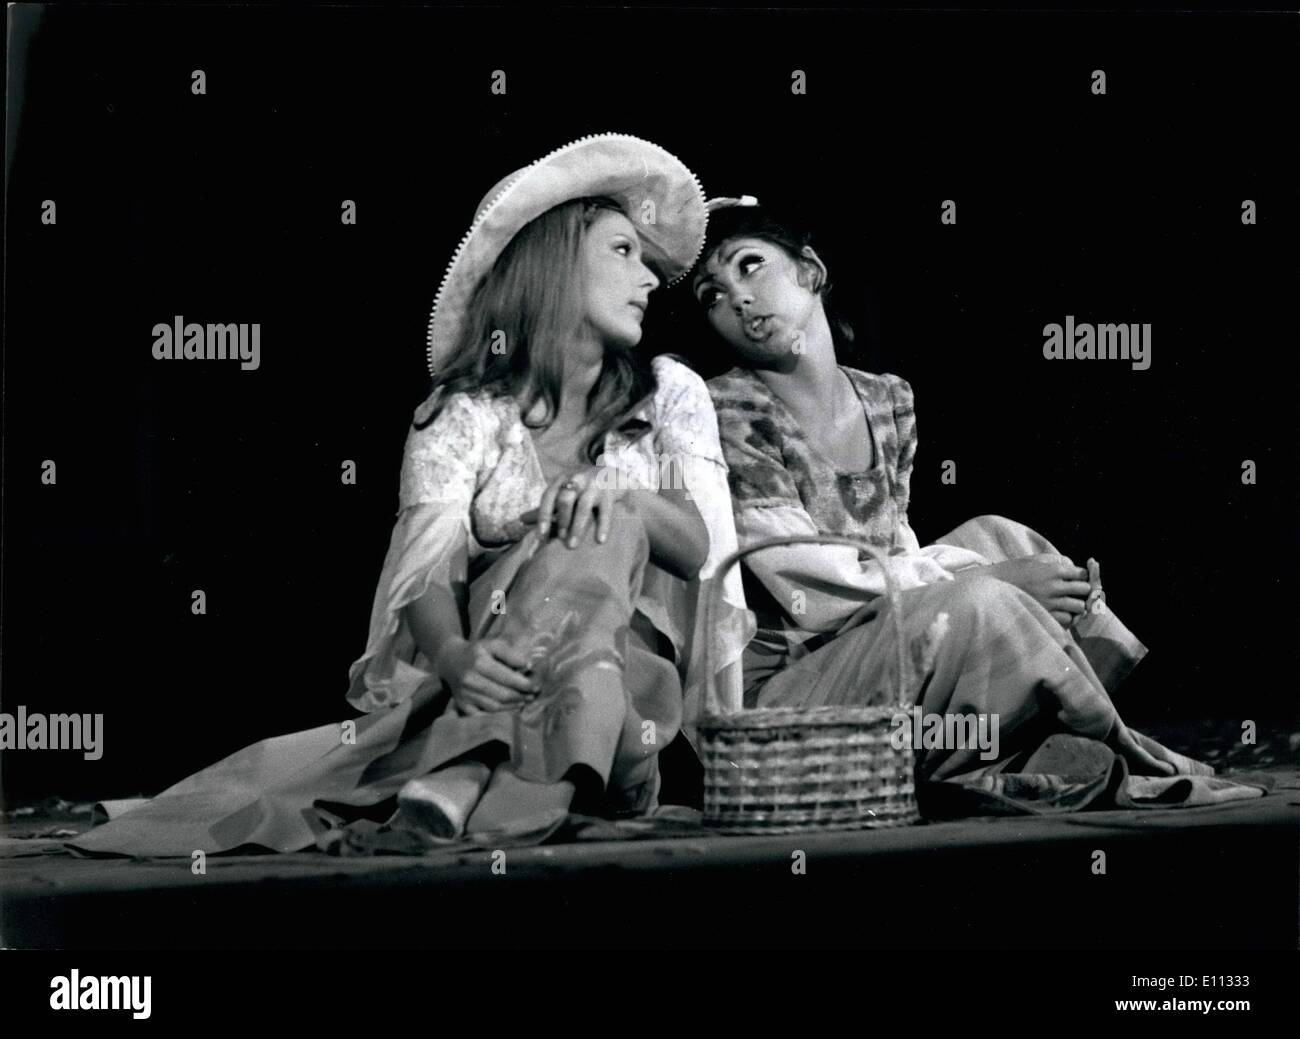 Jun. 06, 1975 - From the programme of Budapest Theatres: Budapest: Zsuzsa Kovacs/left/and Kati Osongradi in a scene of Galt MacDermot's musical comedy ''Boys of Verona'' recently presented by the Municipal Operetta Theatre. Stage Manager: Lasalo Vamos. - Stock Image